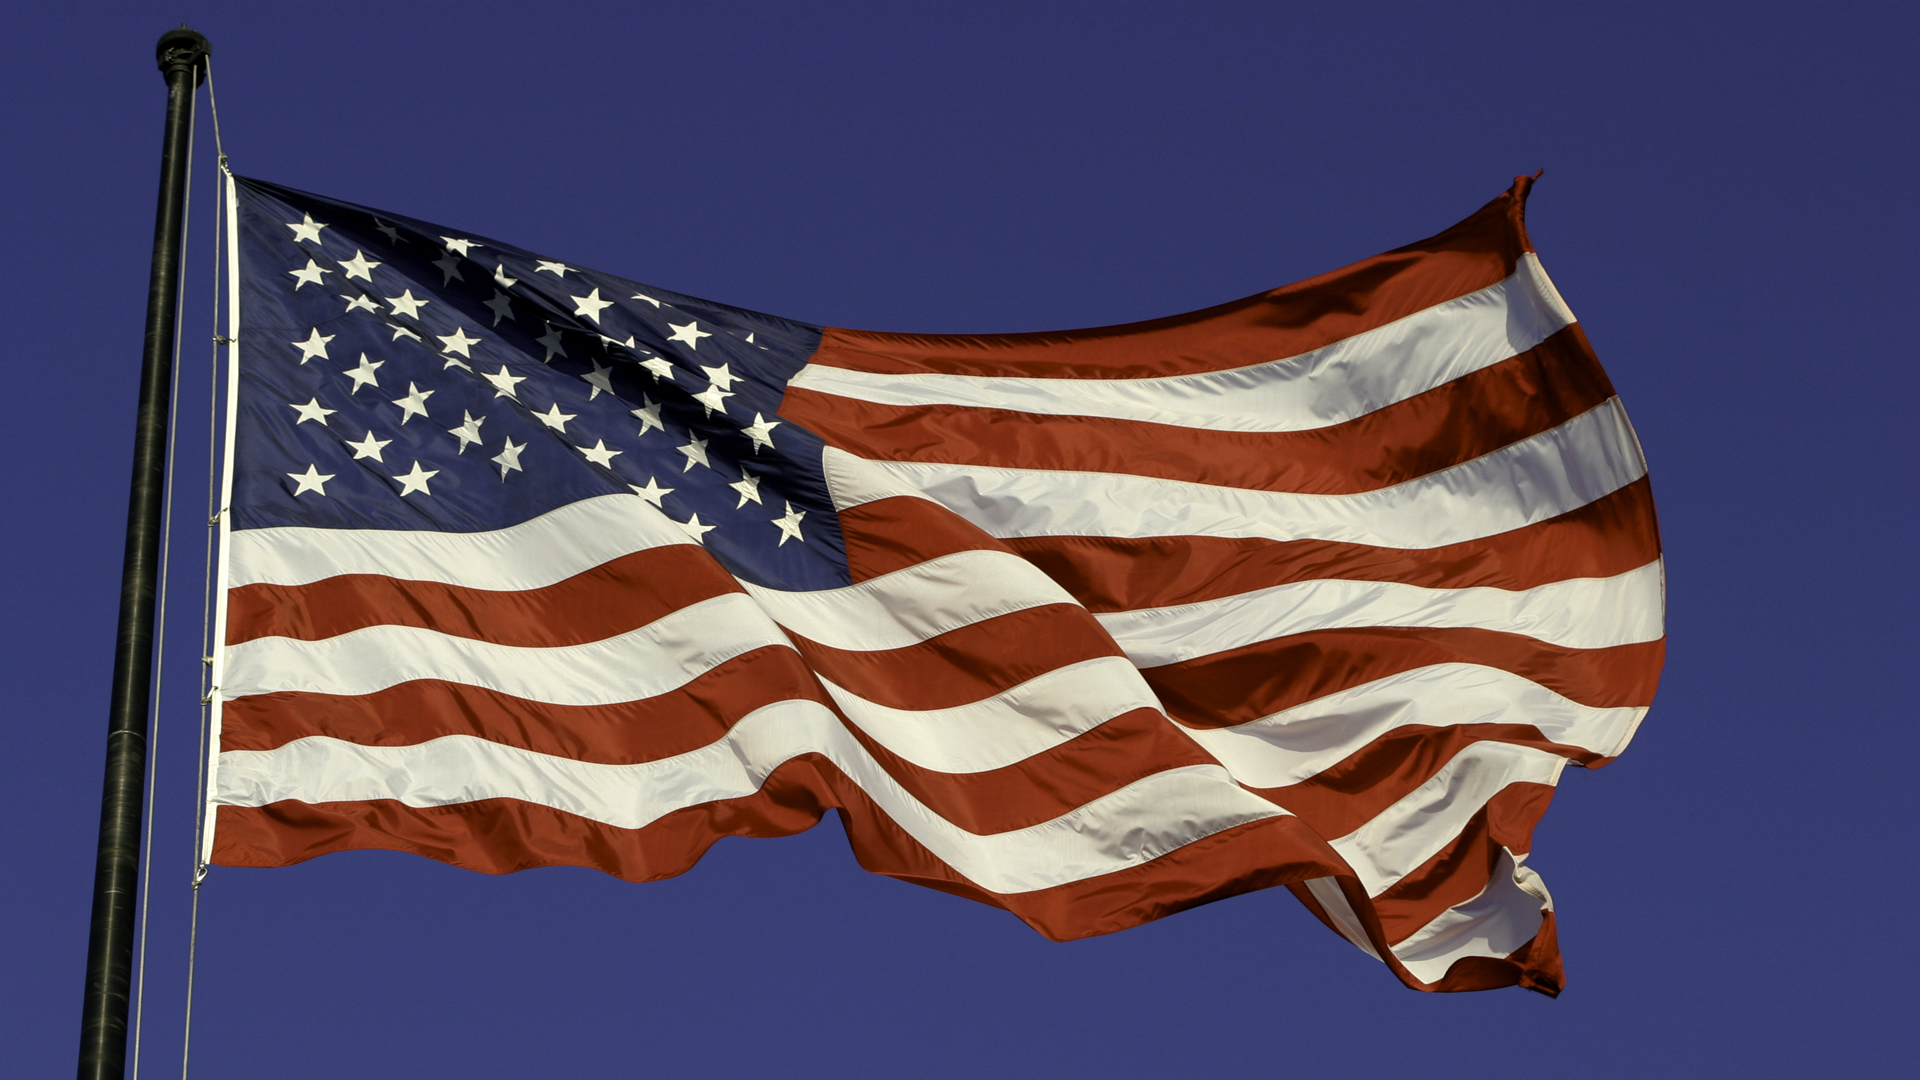 An American flag is seen in a file image. (Credit: iStock / Getty Images Plus)